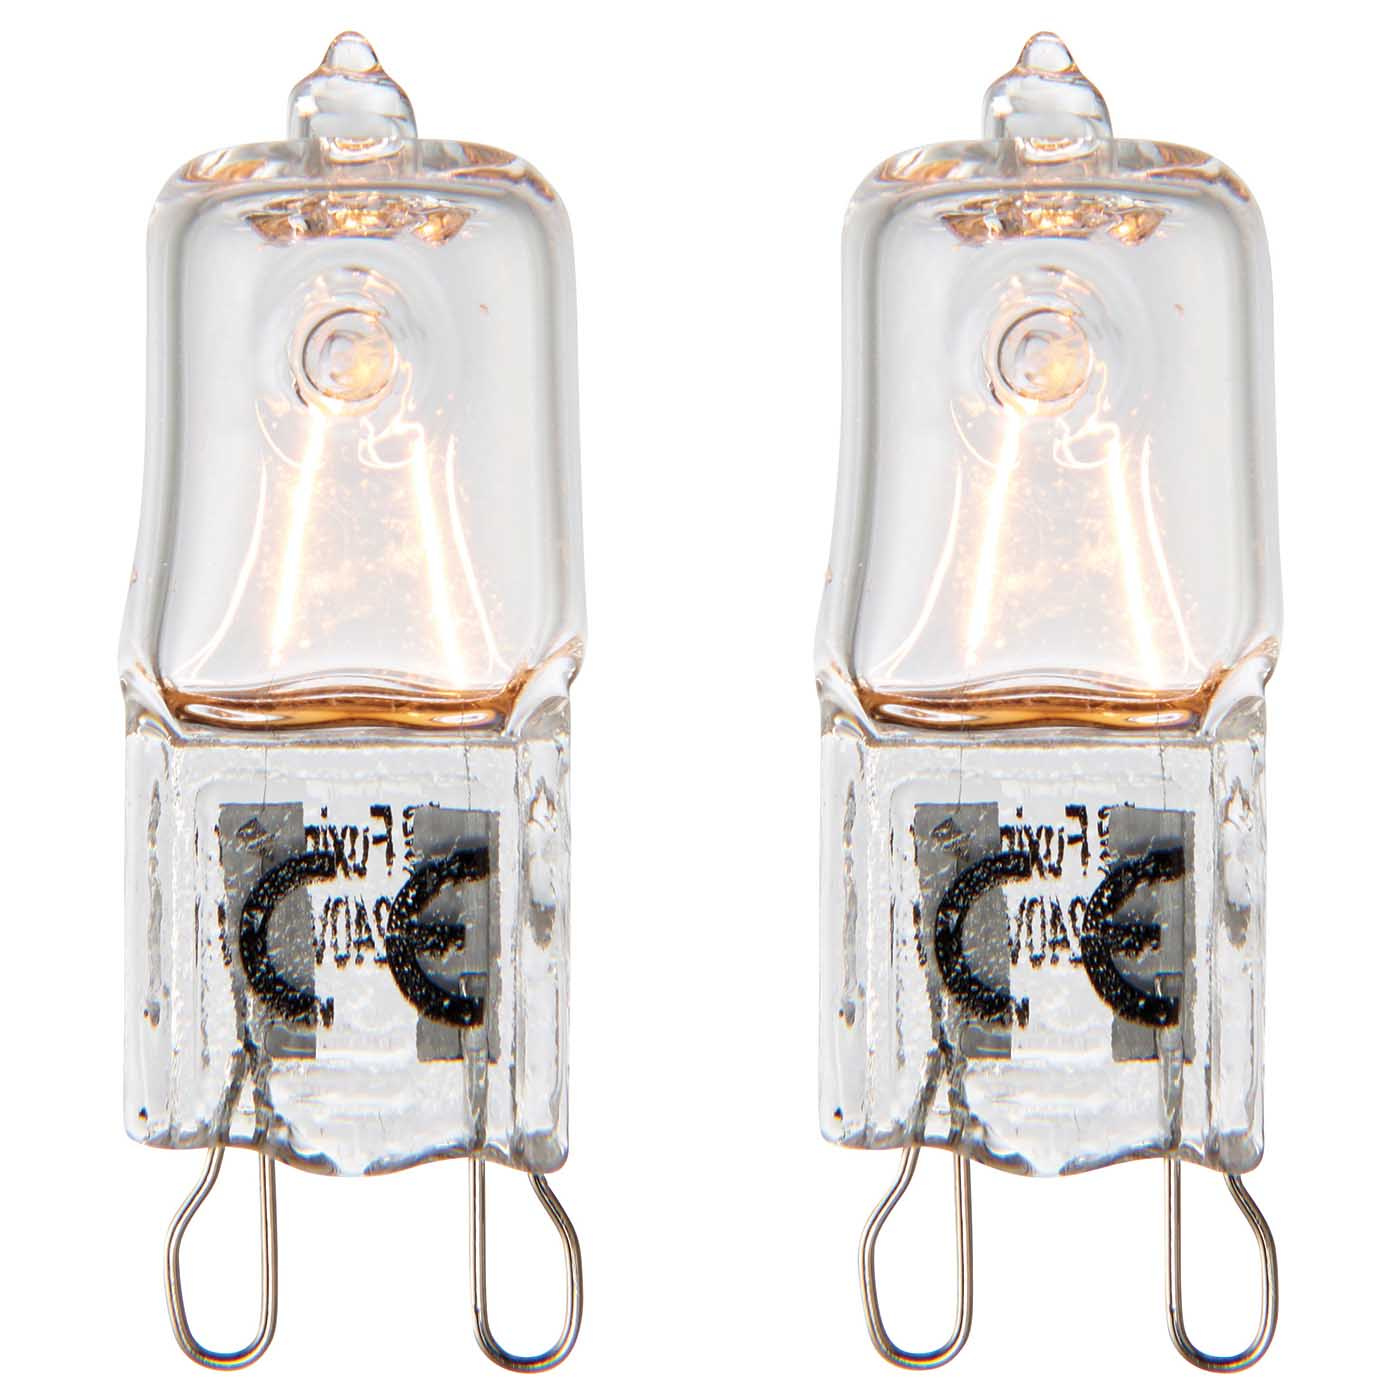 Saxby G9 eco halogen capsule light bulb dimmable twin pack 18W warm white 3000K Thumbnail 1